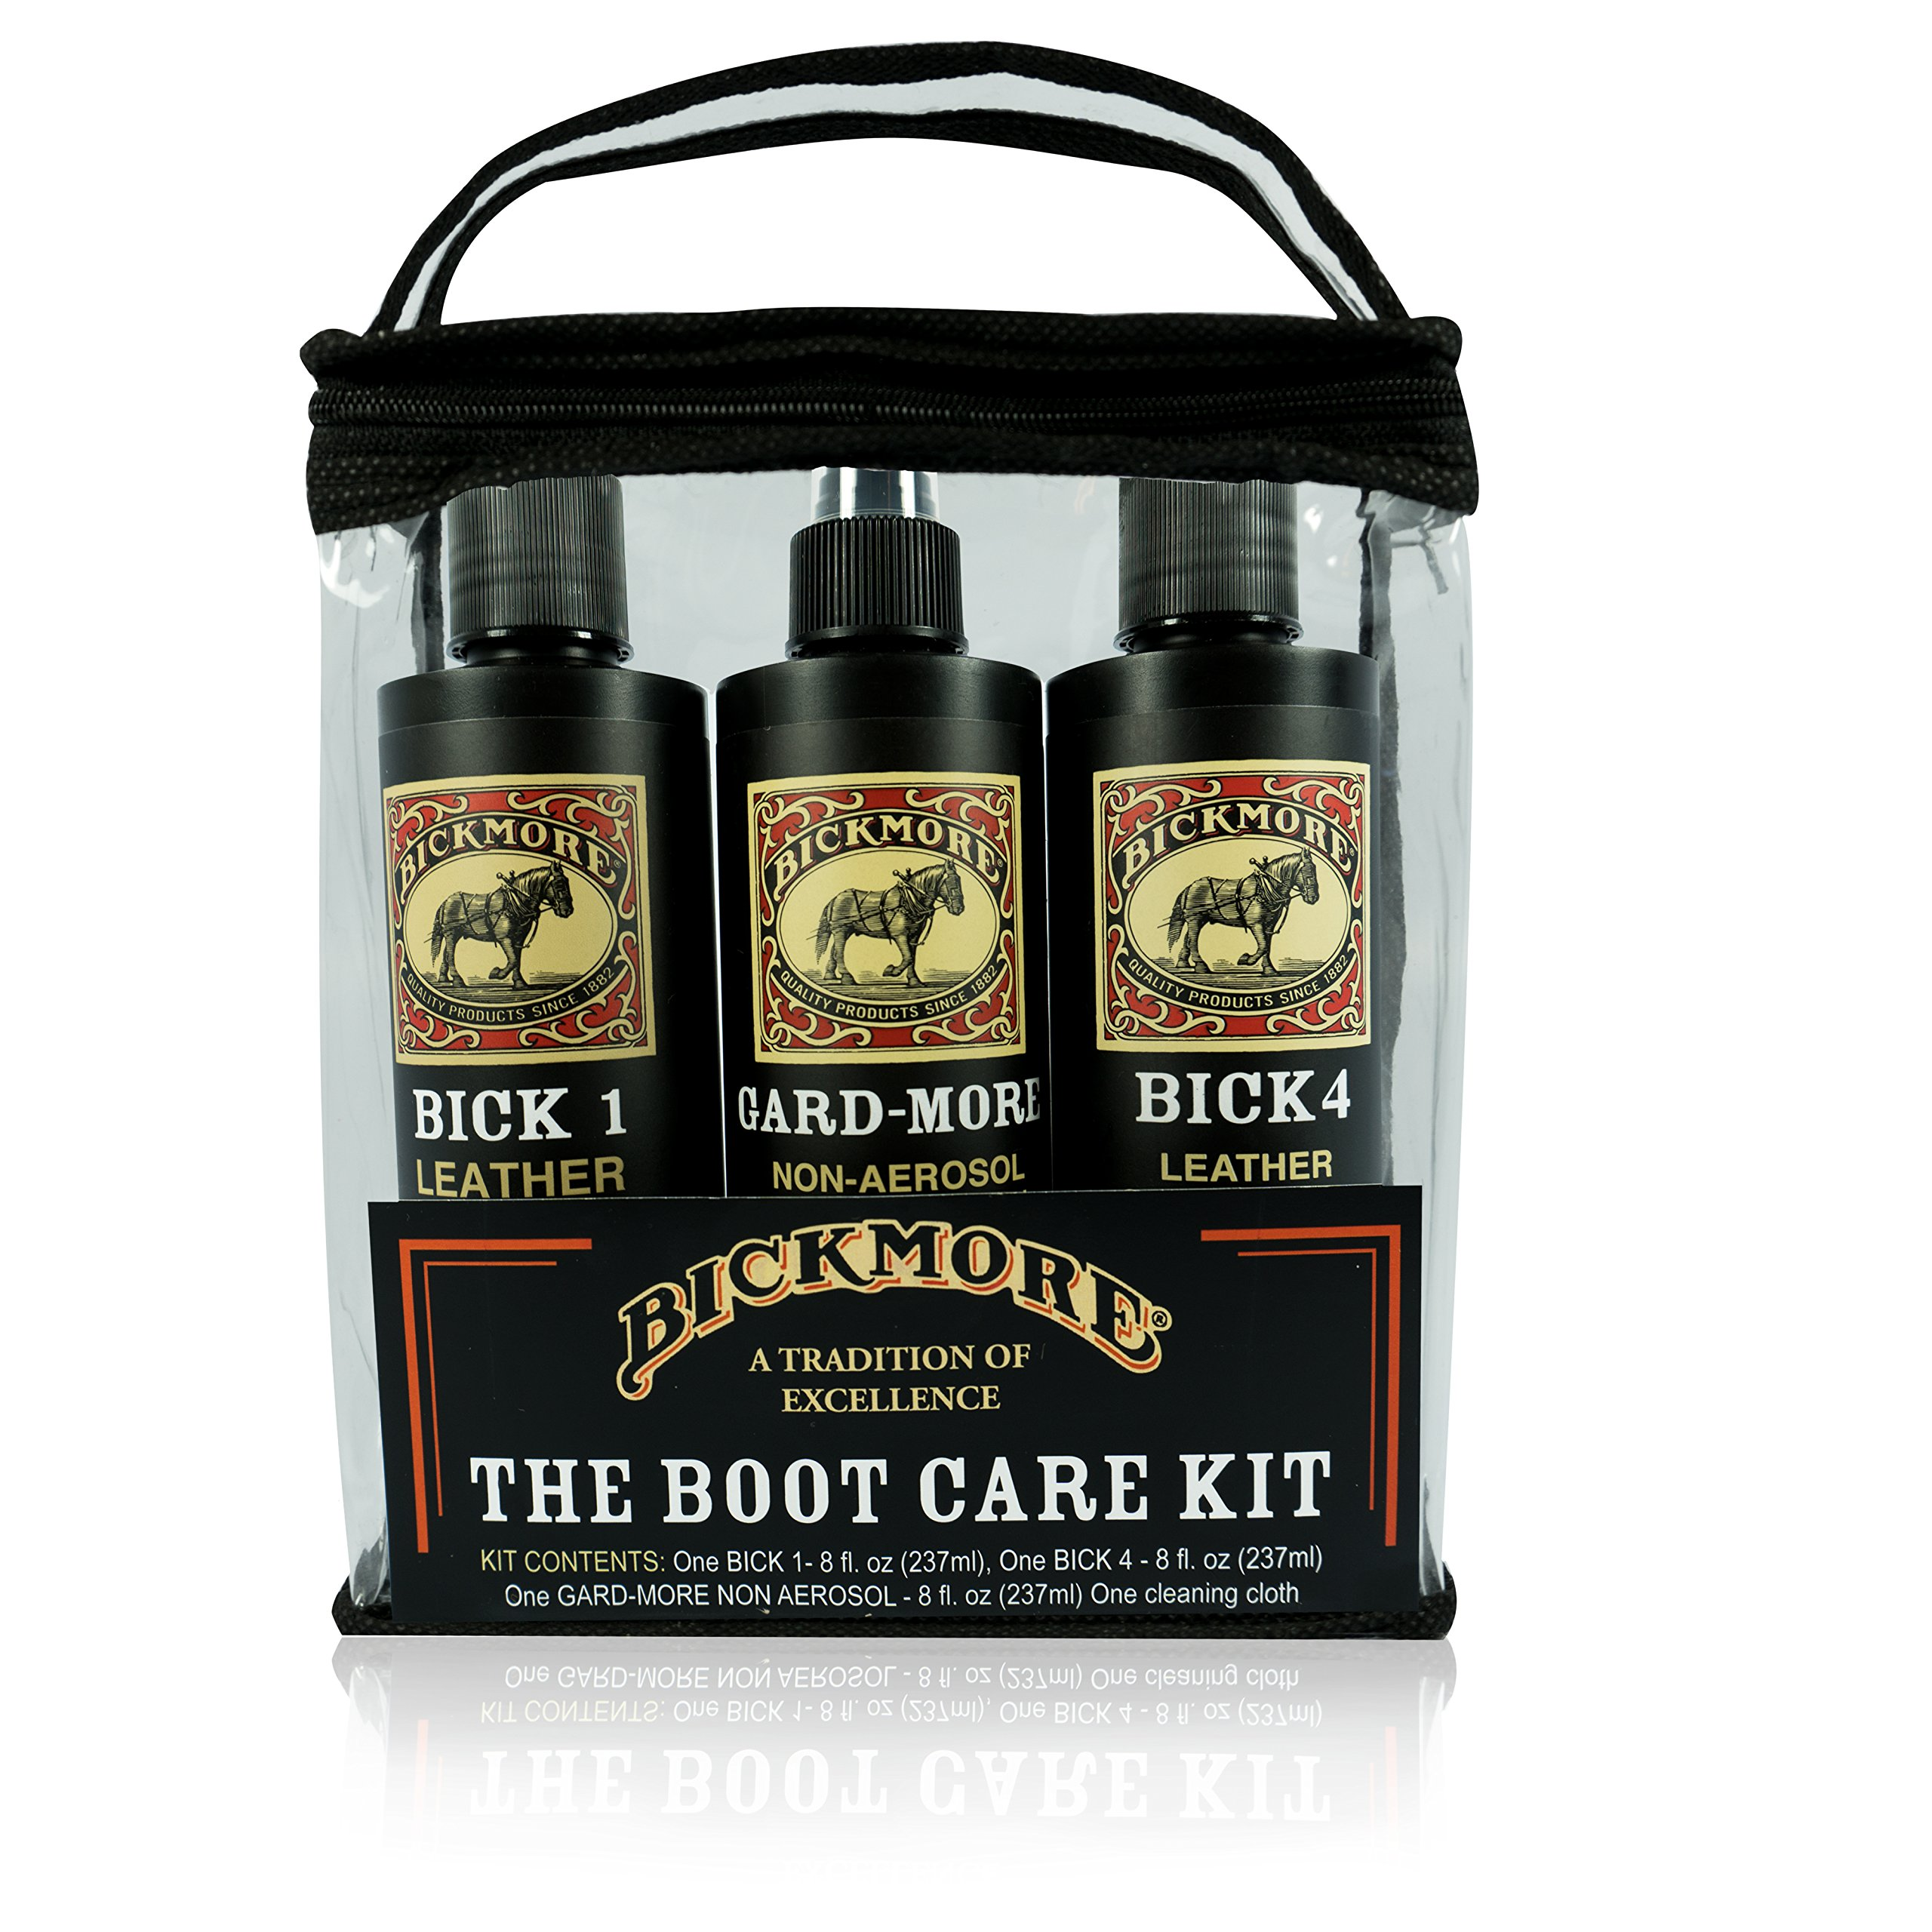 Bickmore Leather Conditioner Kit - Leather Cleaner Conditioner & Protector - Bick 1 Bick 4 & Gard-More - For Cleaning Softening and Protecting Boots Shoes Handbags Purses Jackets and More